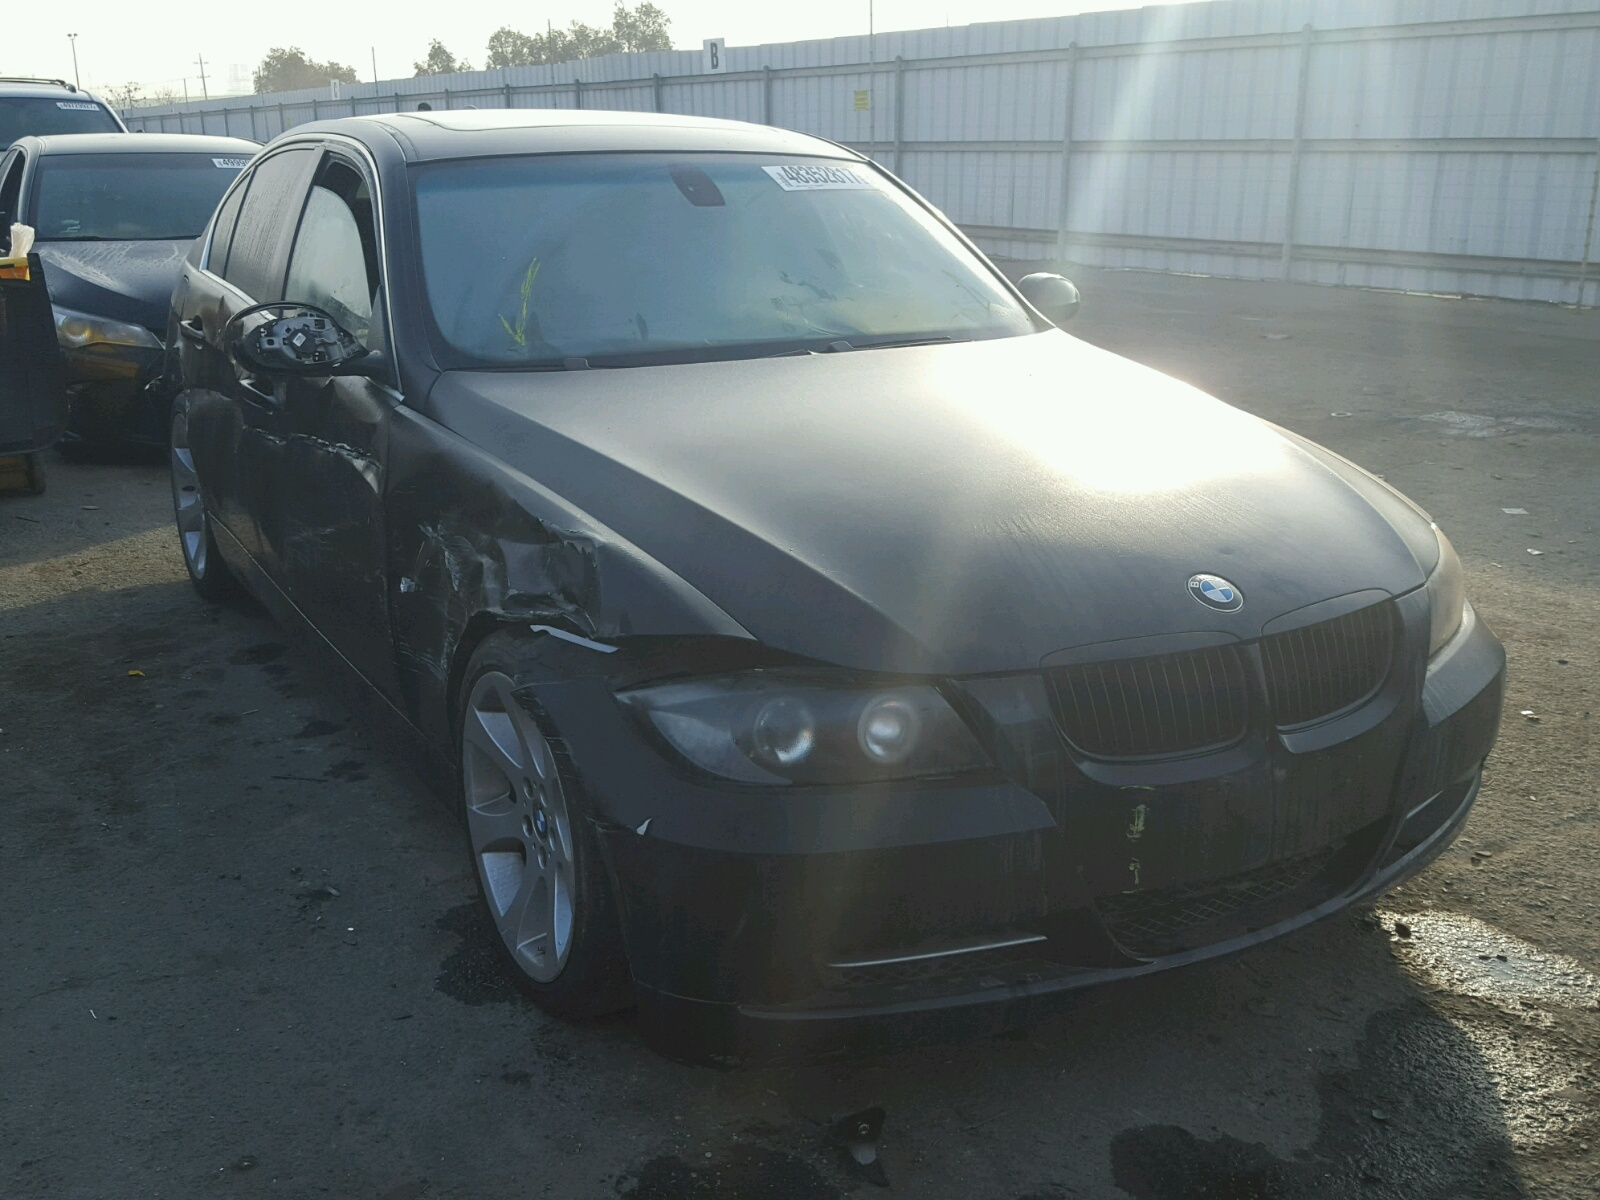 sacramento with that bmw incredible to for be vehicle cars awesome bought